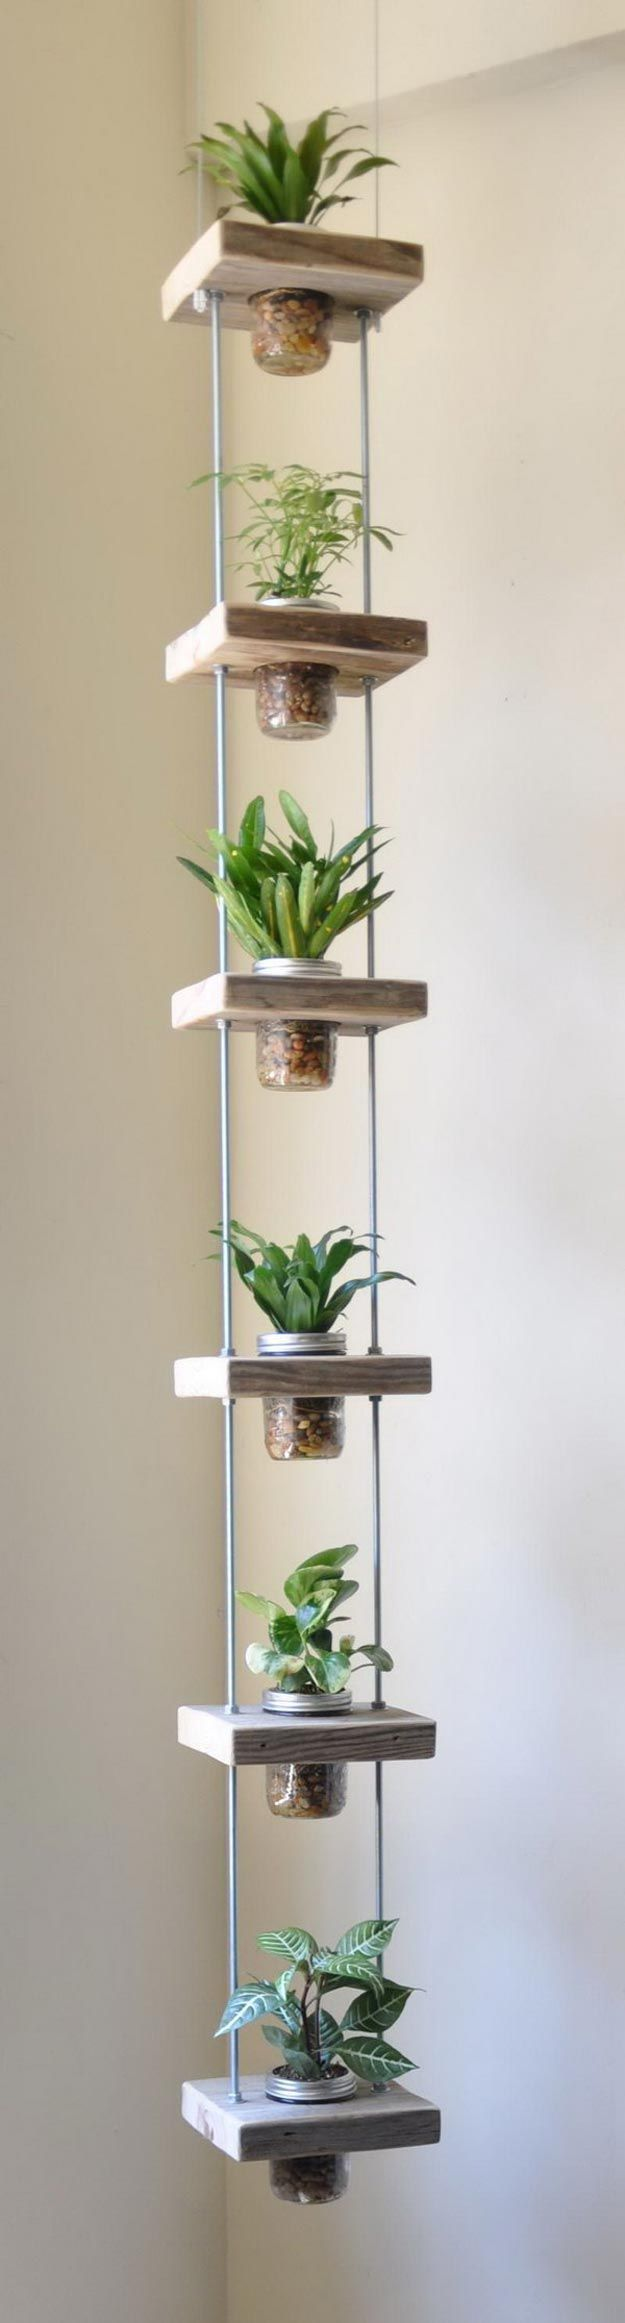 best 25 vertical herb gardens ideas on pinterest wall gardens